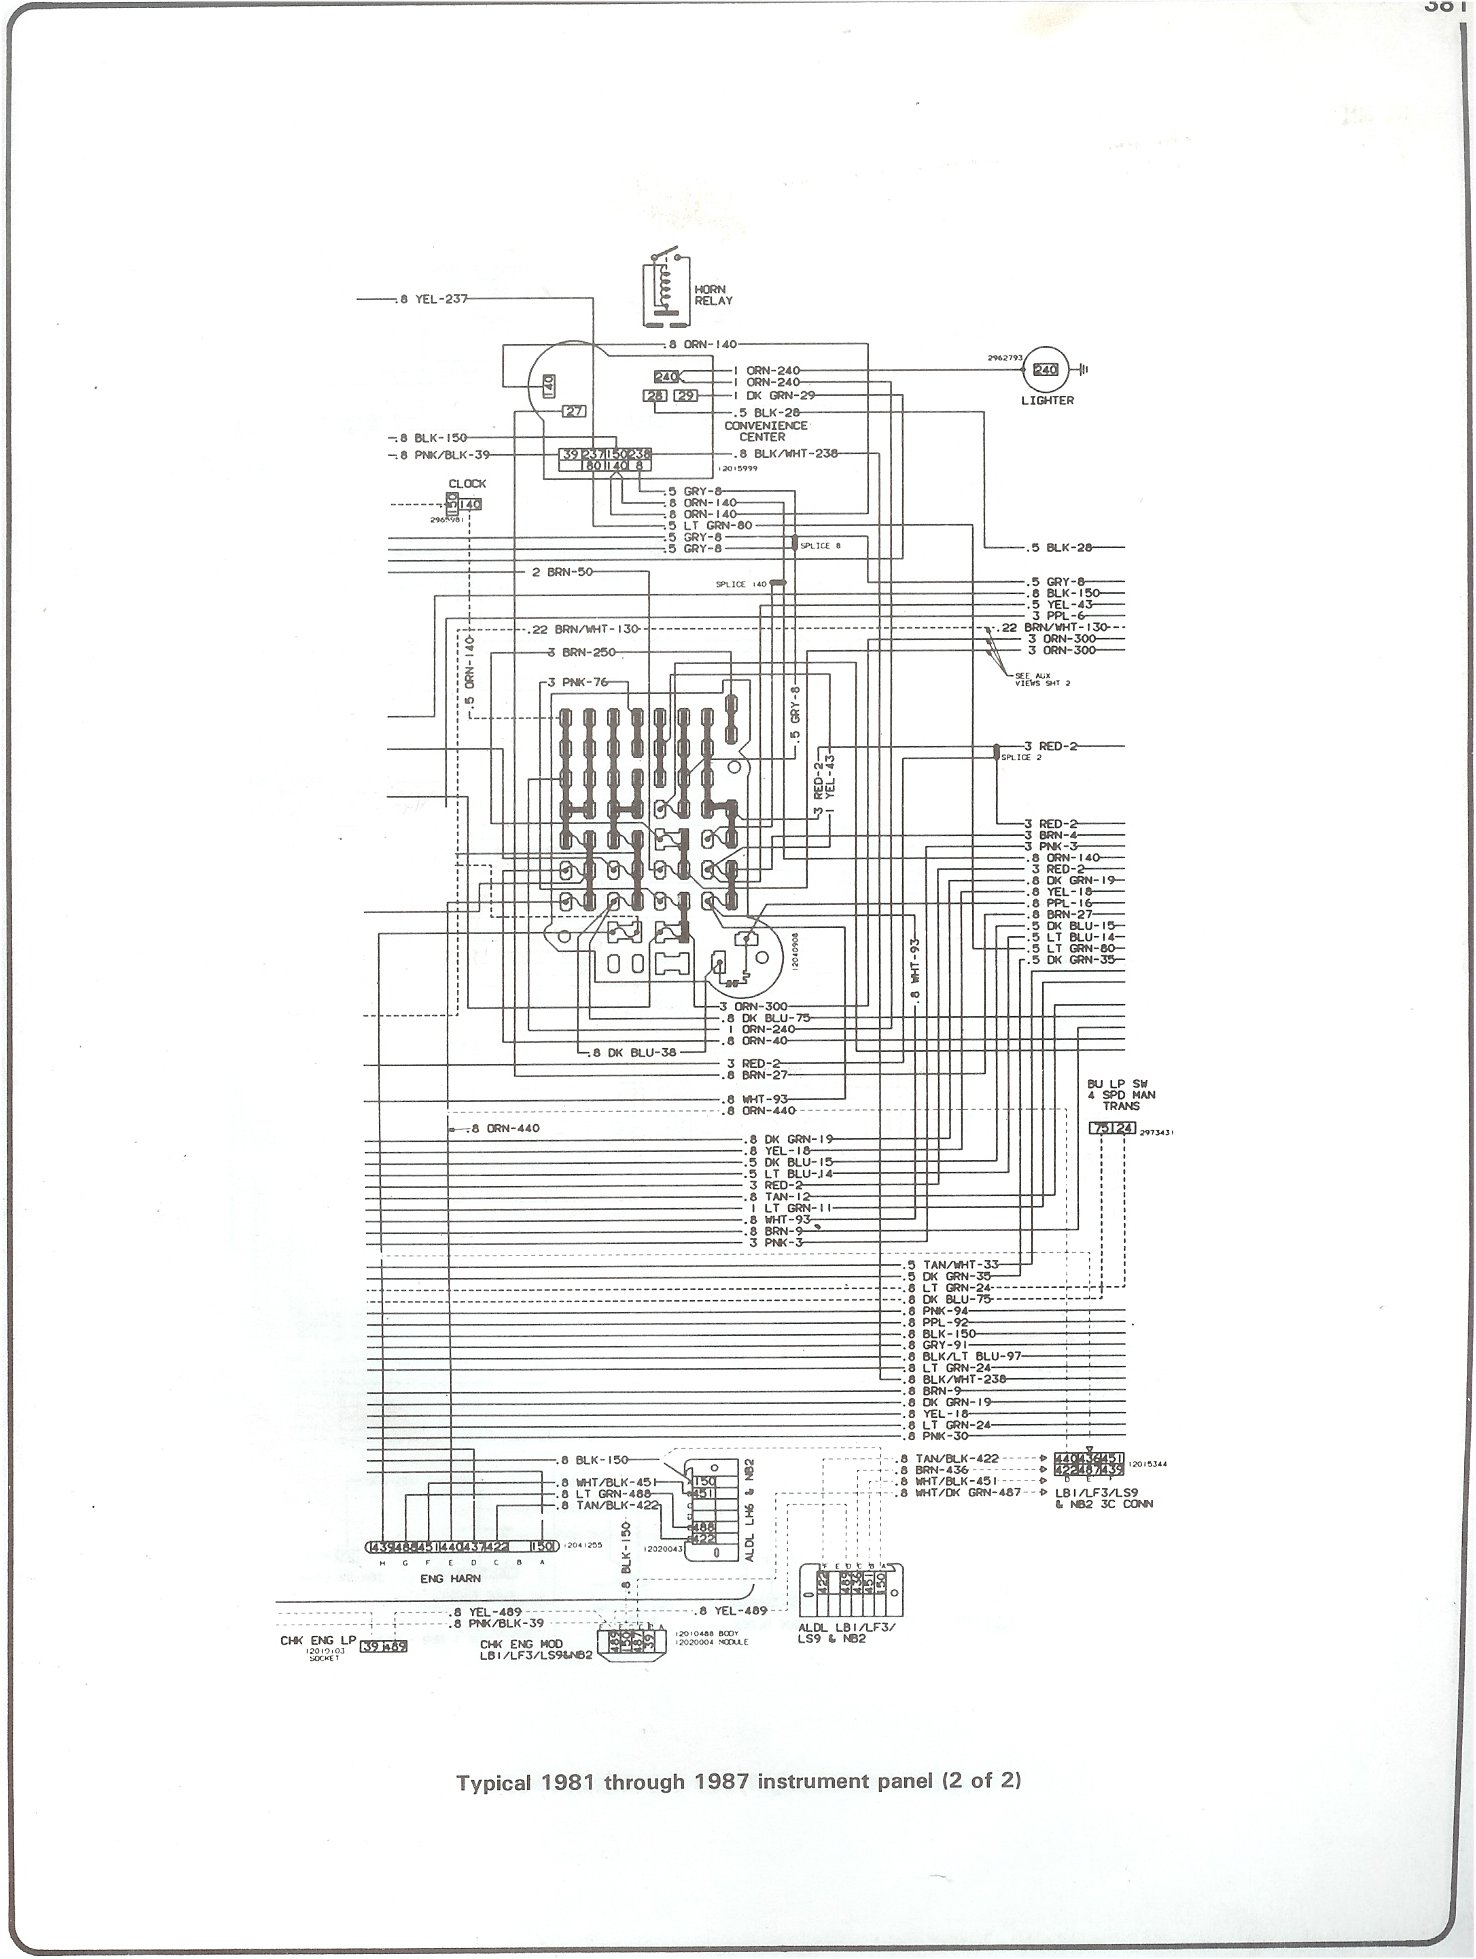 brake light switch wiring diagram? - blazer forum - chevy ... 81 chevy luv wire diagram #9